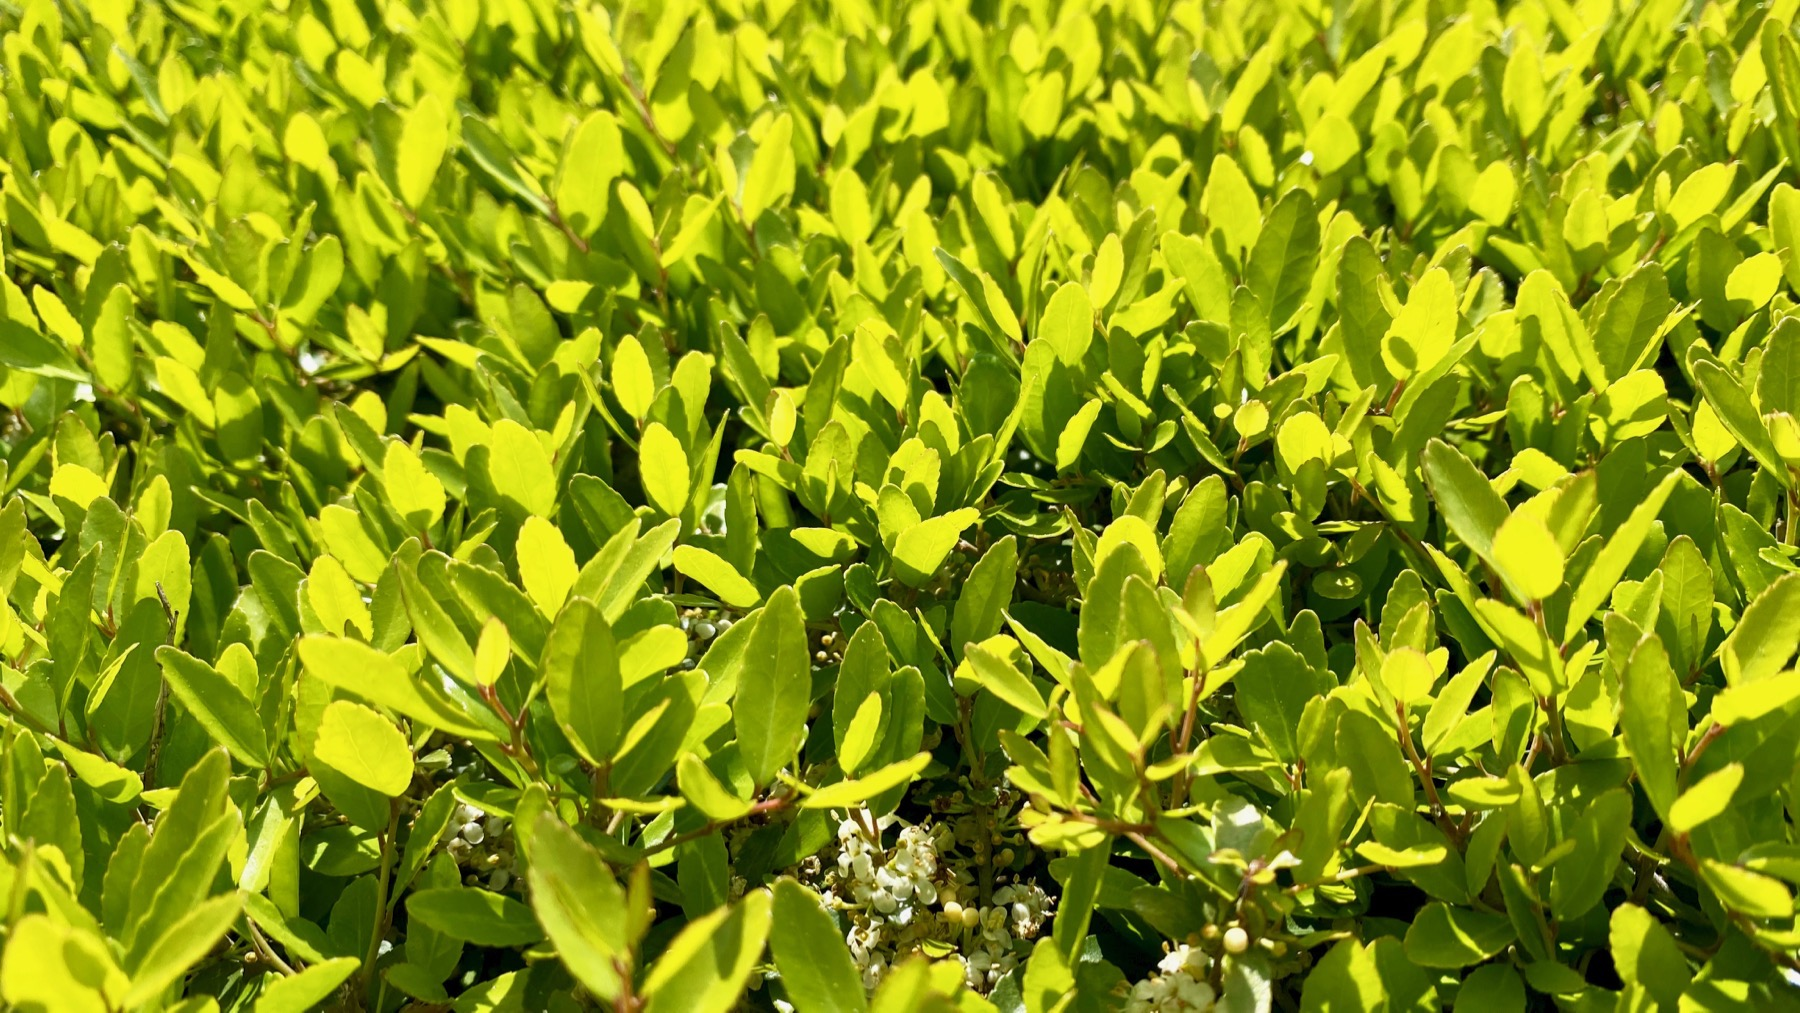 Hedge new leaves